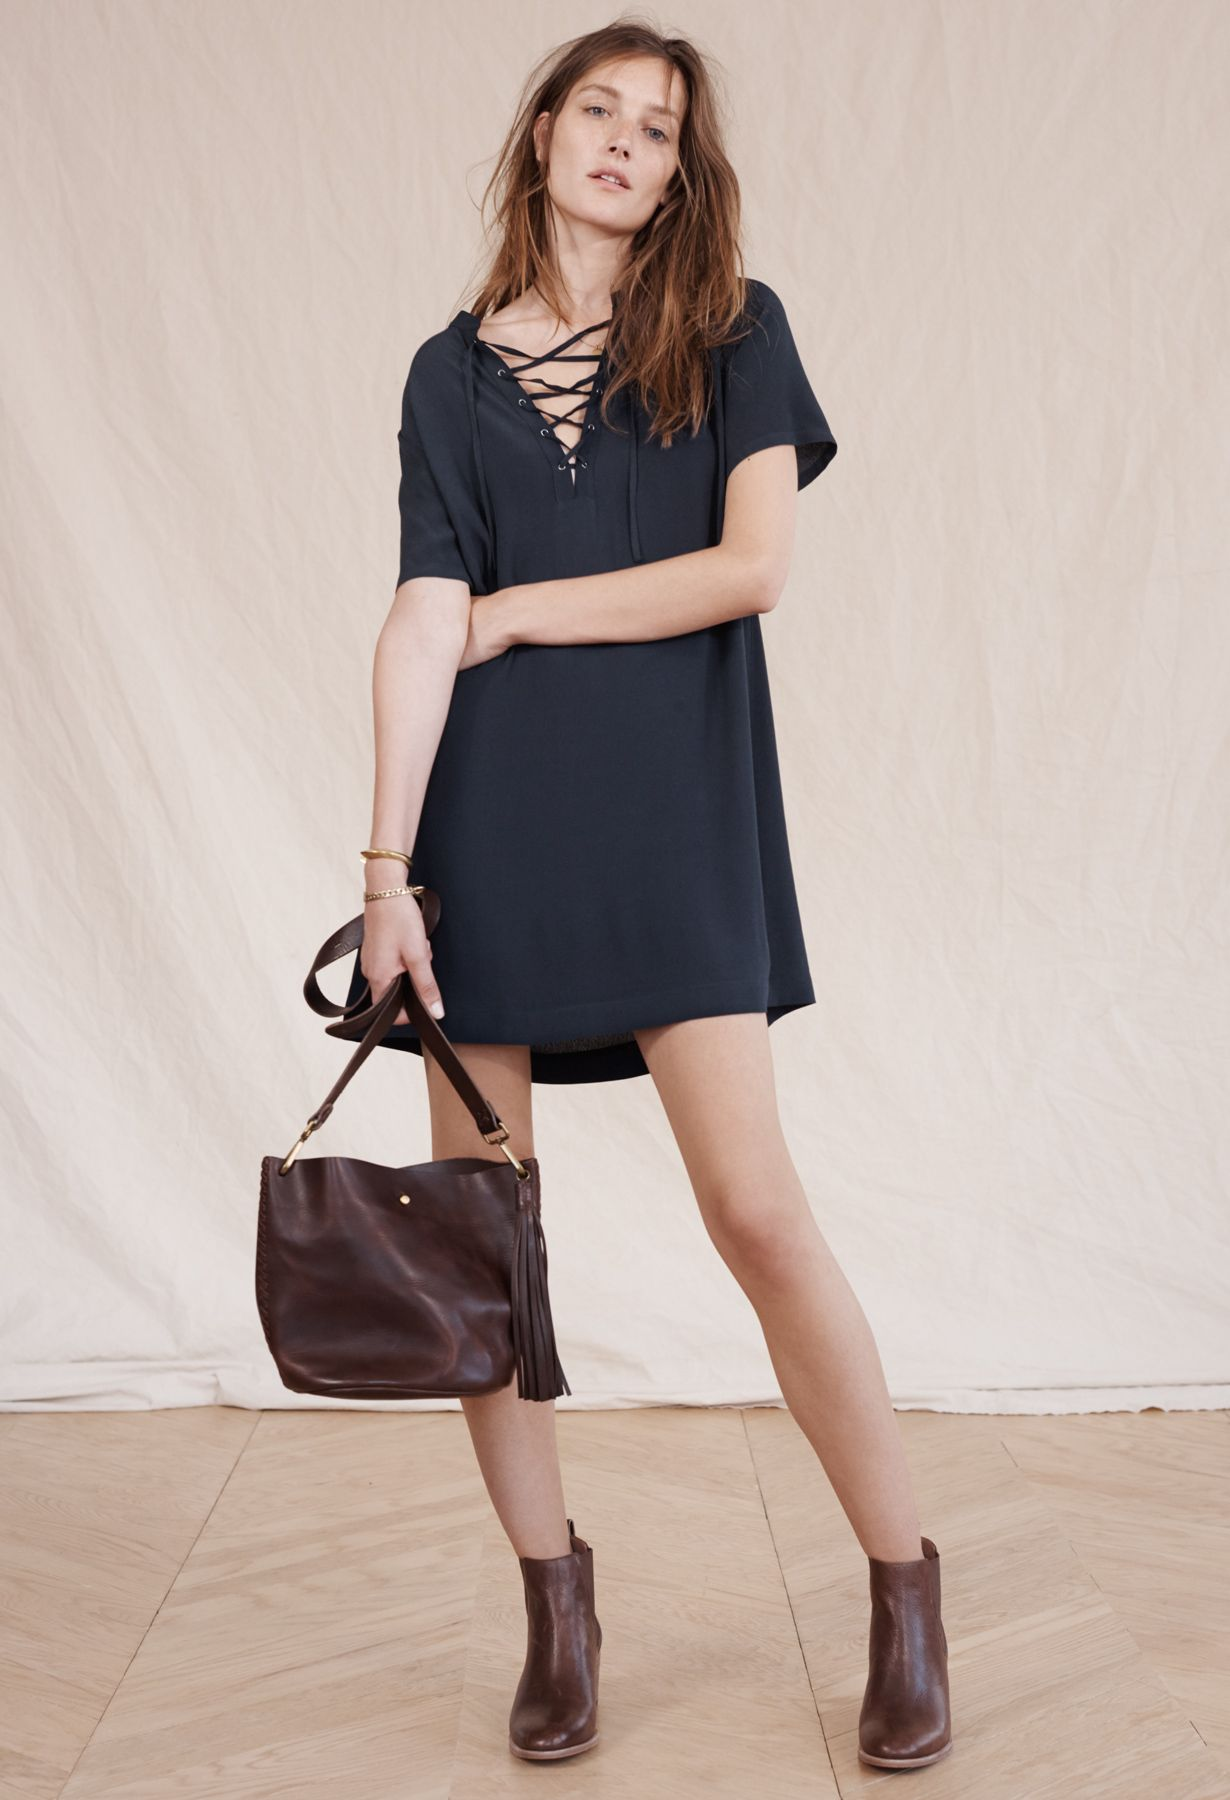 6802f8ae22 madewell novella lace-up dress worn with the frankie chelsea boot + rivet    thread mini bucket bag.